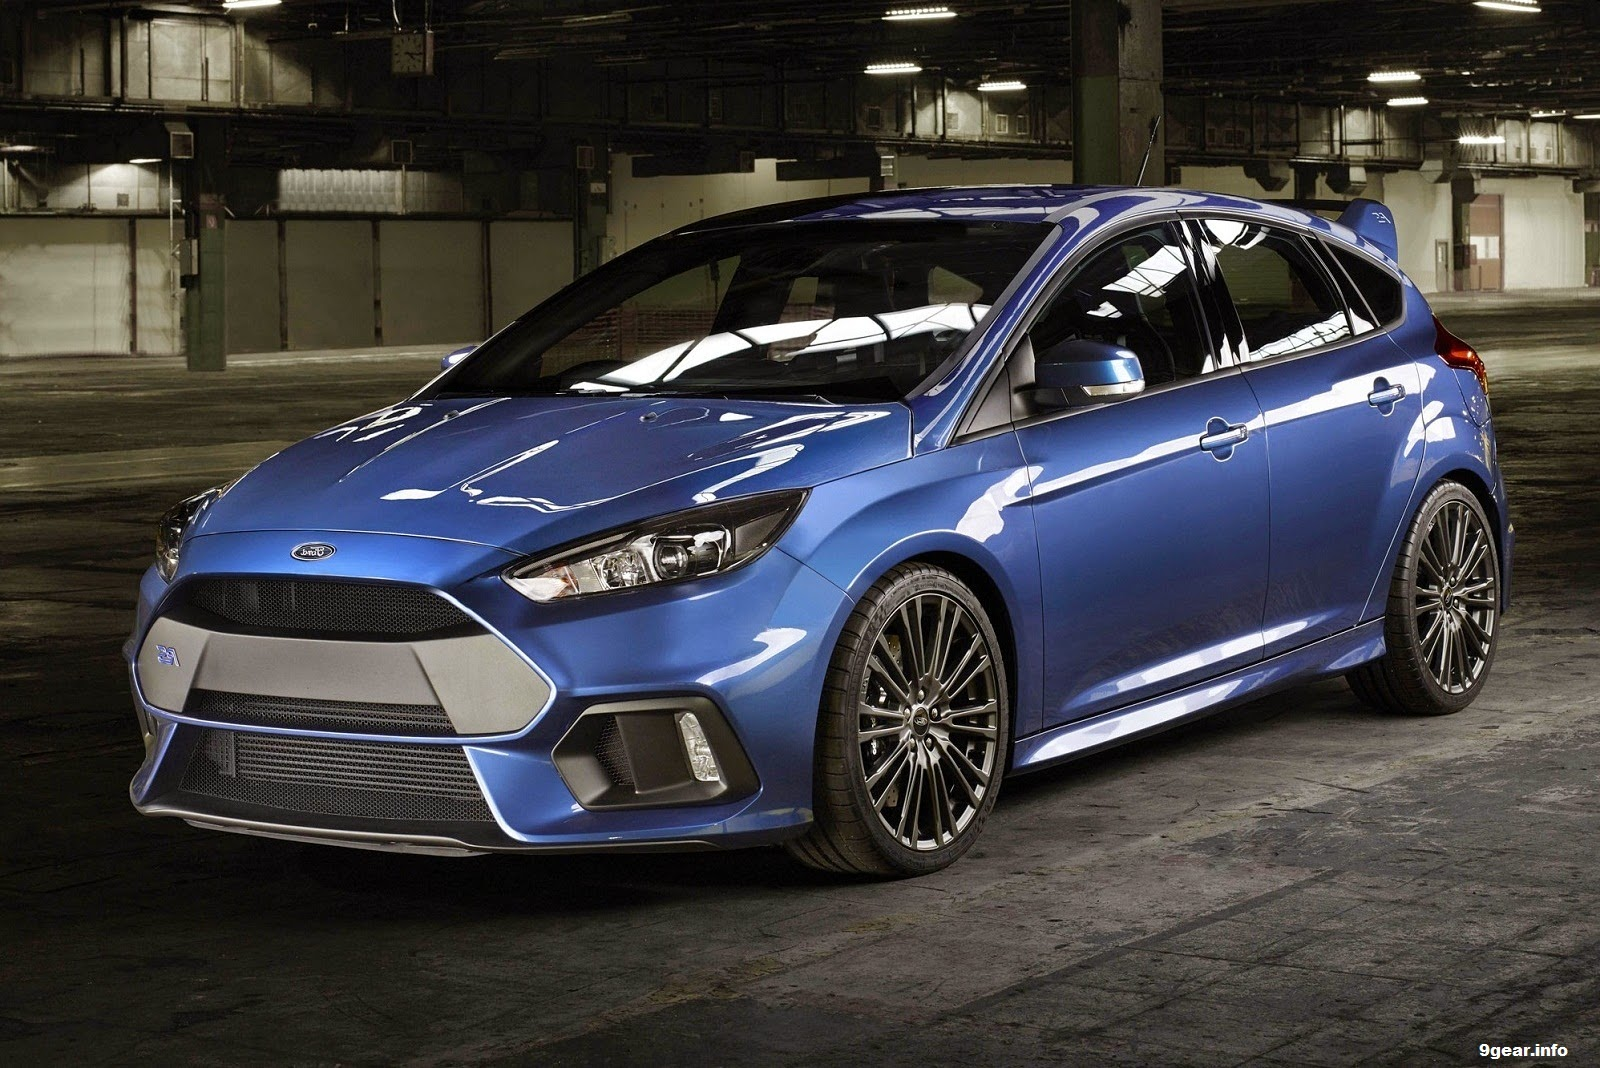 2016 ford focus rs 2 3 litre ecoboost 320 ps awd car reviews new car pictures for 2018 2019. Black Bedroom Furniture Sets. Home Design Ideas